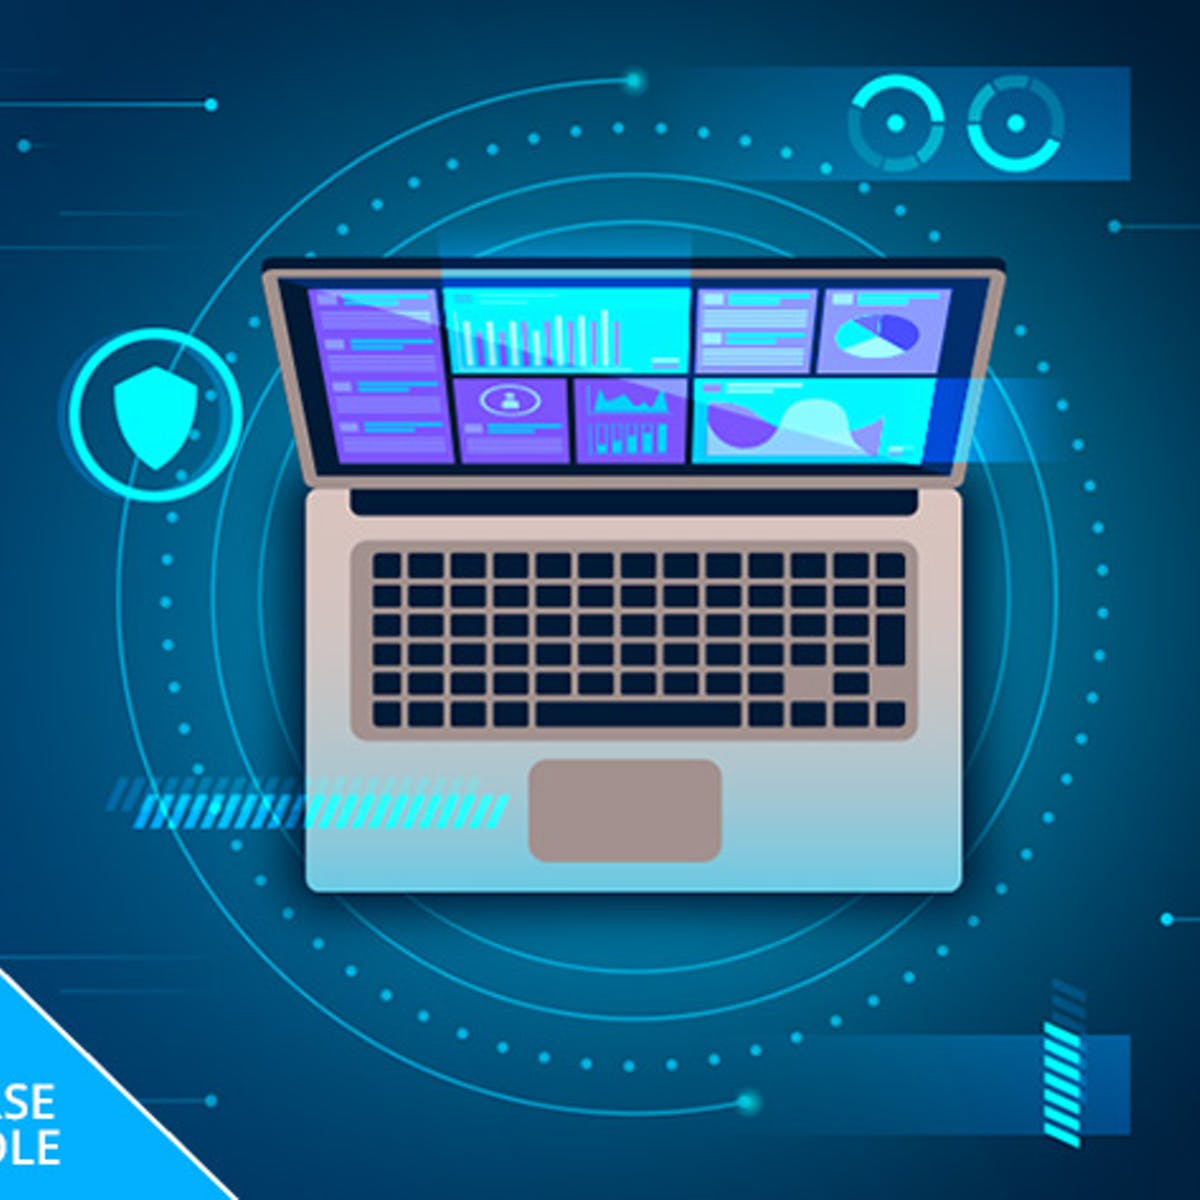 The Complete Information Security Certification Bundle